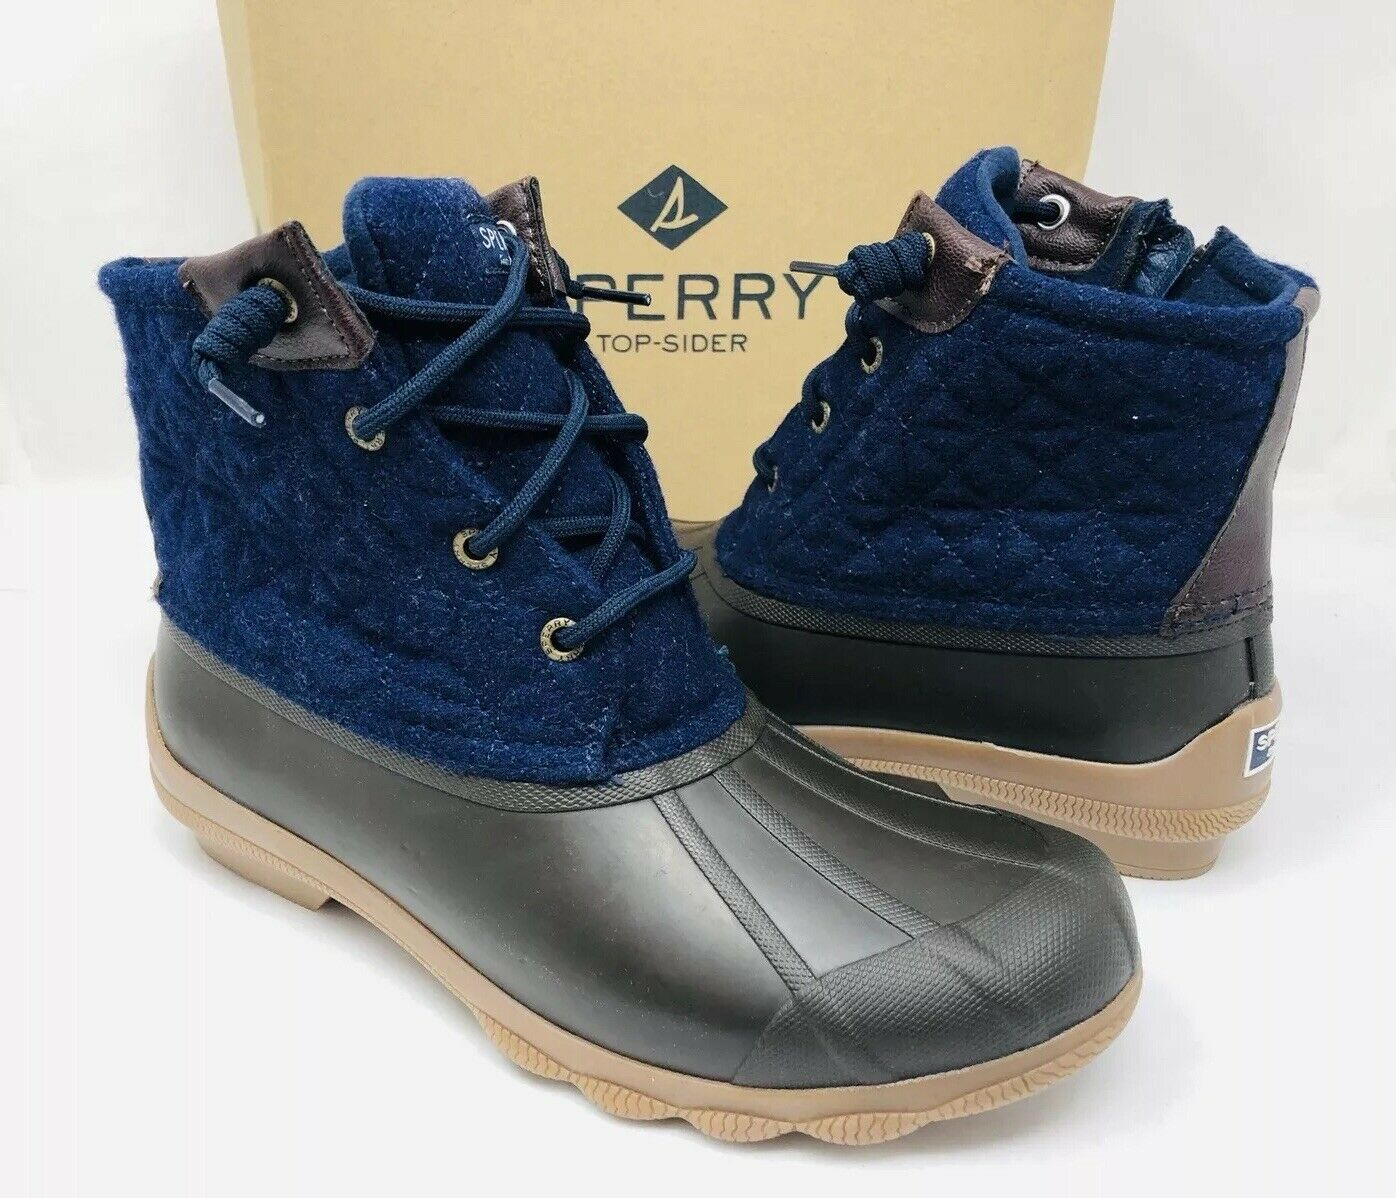 Sperry Top-Sider Top-Sider Top-Sider Women's Syren Gulf Duck Booties Grey Navy Size 7M, MSRP  120 833ac2